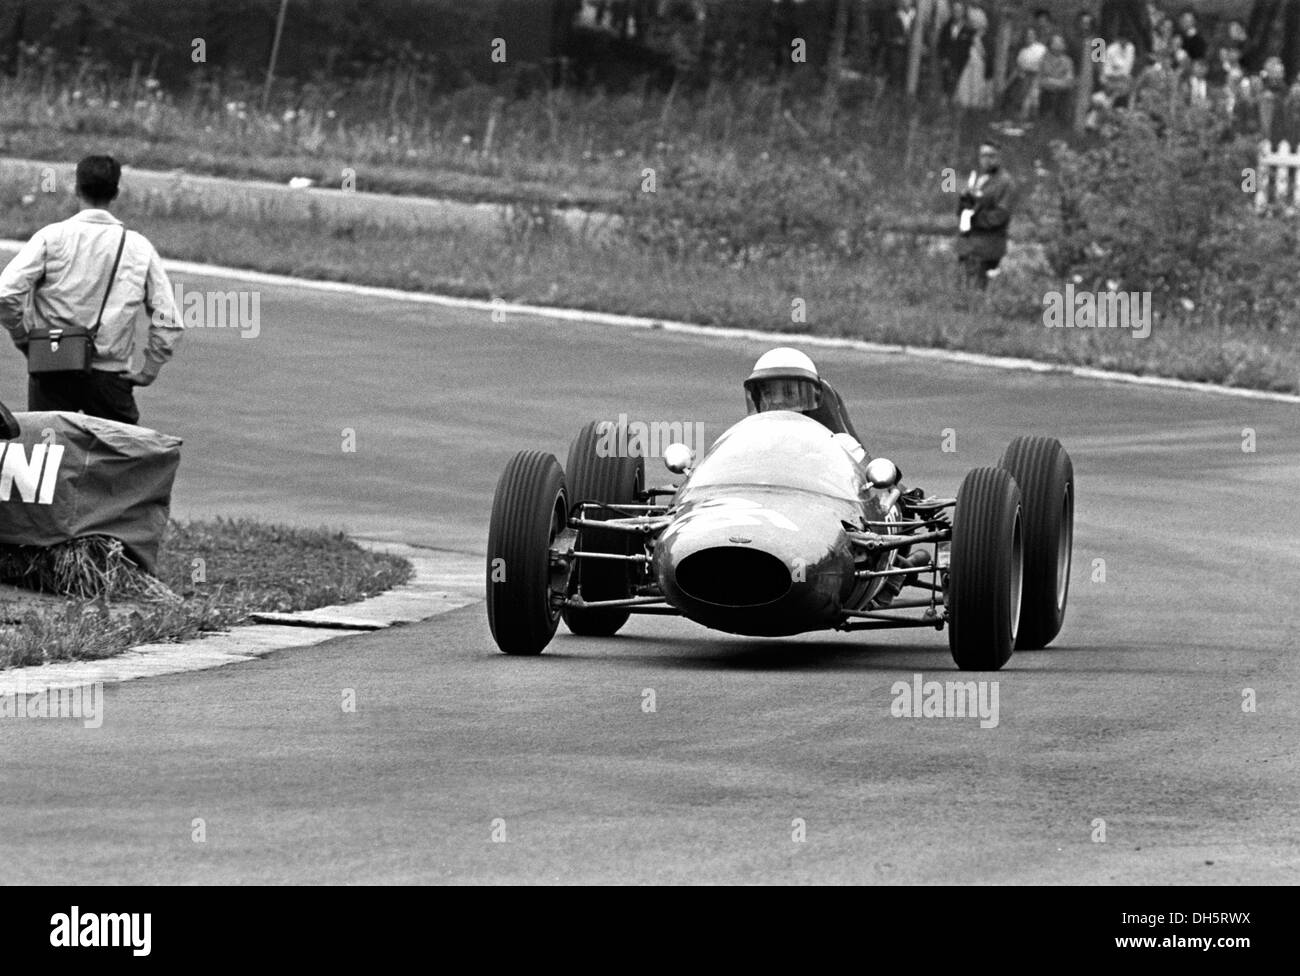 Phil Hill in an ATS 100 at the  top of the Raidillon climb in the Belgian GP, Spa-Francorchamps, Belgium 9th June 1963. - Stock Image